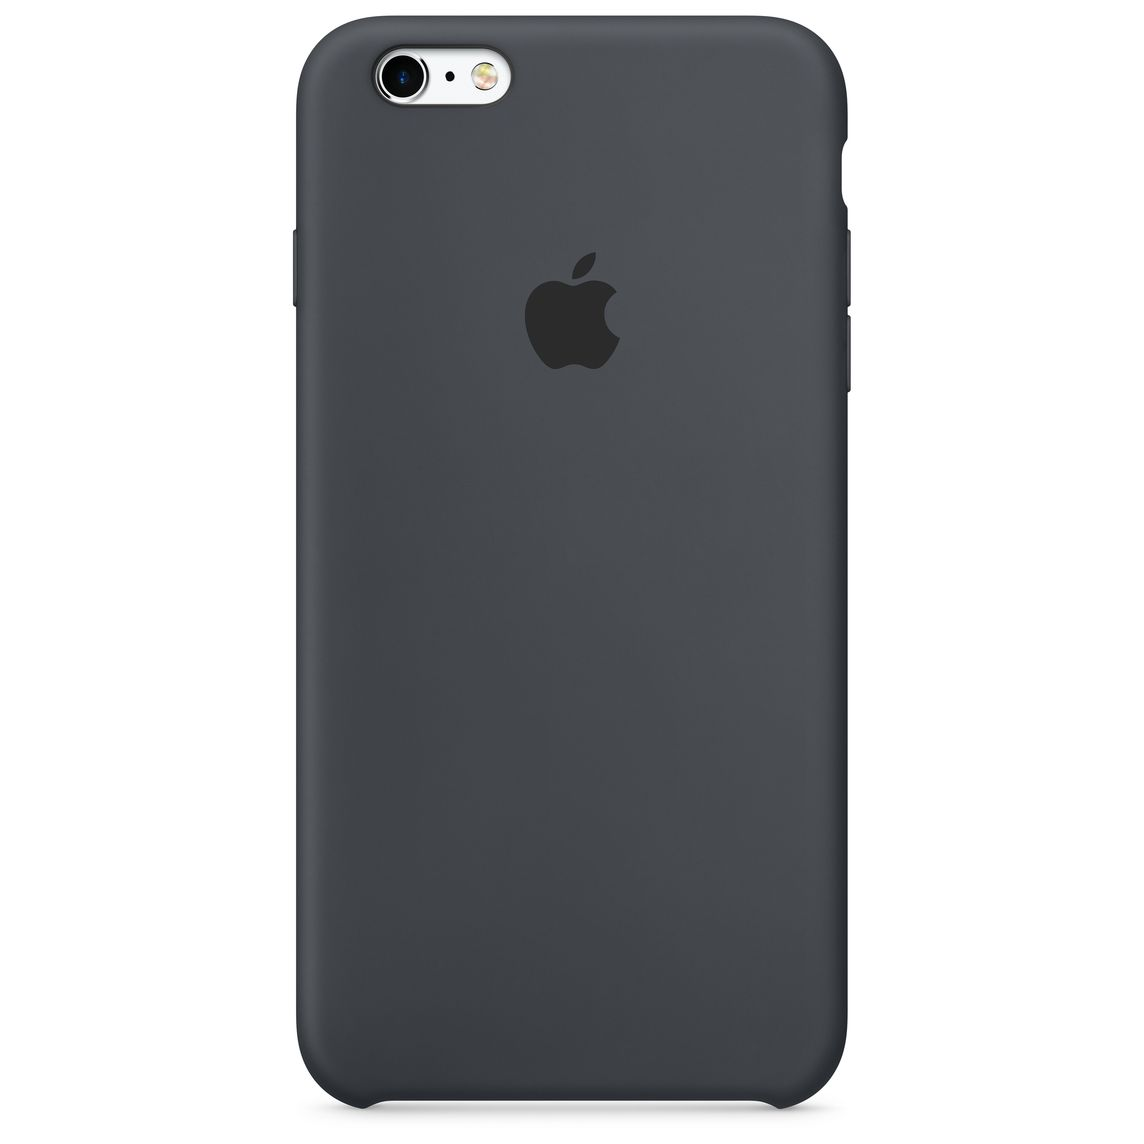 best website ba511 1cf2c iPhone 6 Plus / 6s Plus Silicone Case - Charcoal Gray